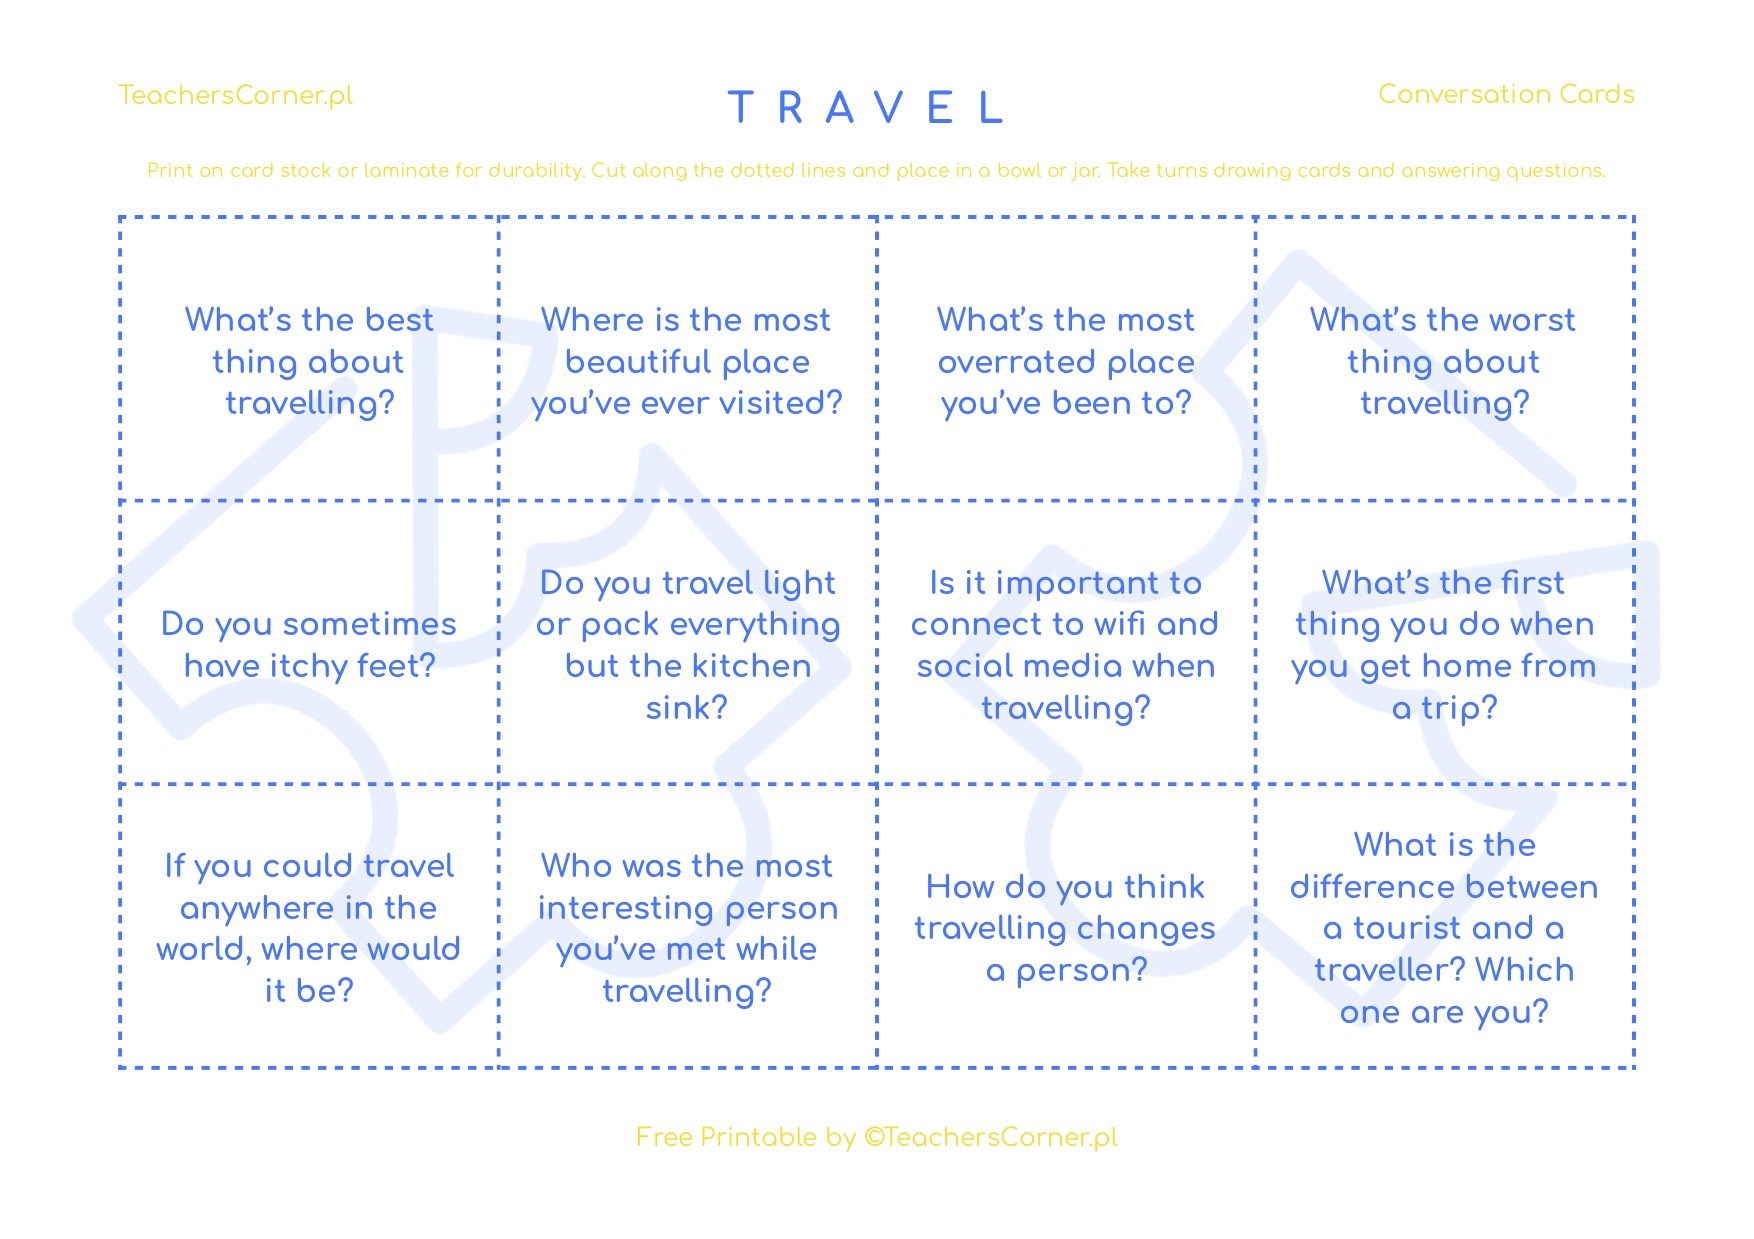 Conversation Cards - Travel Questions